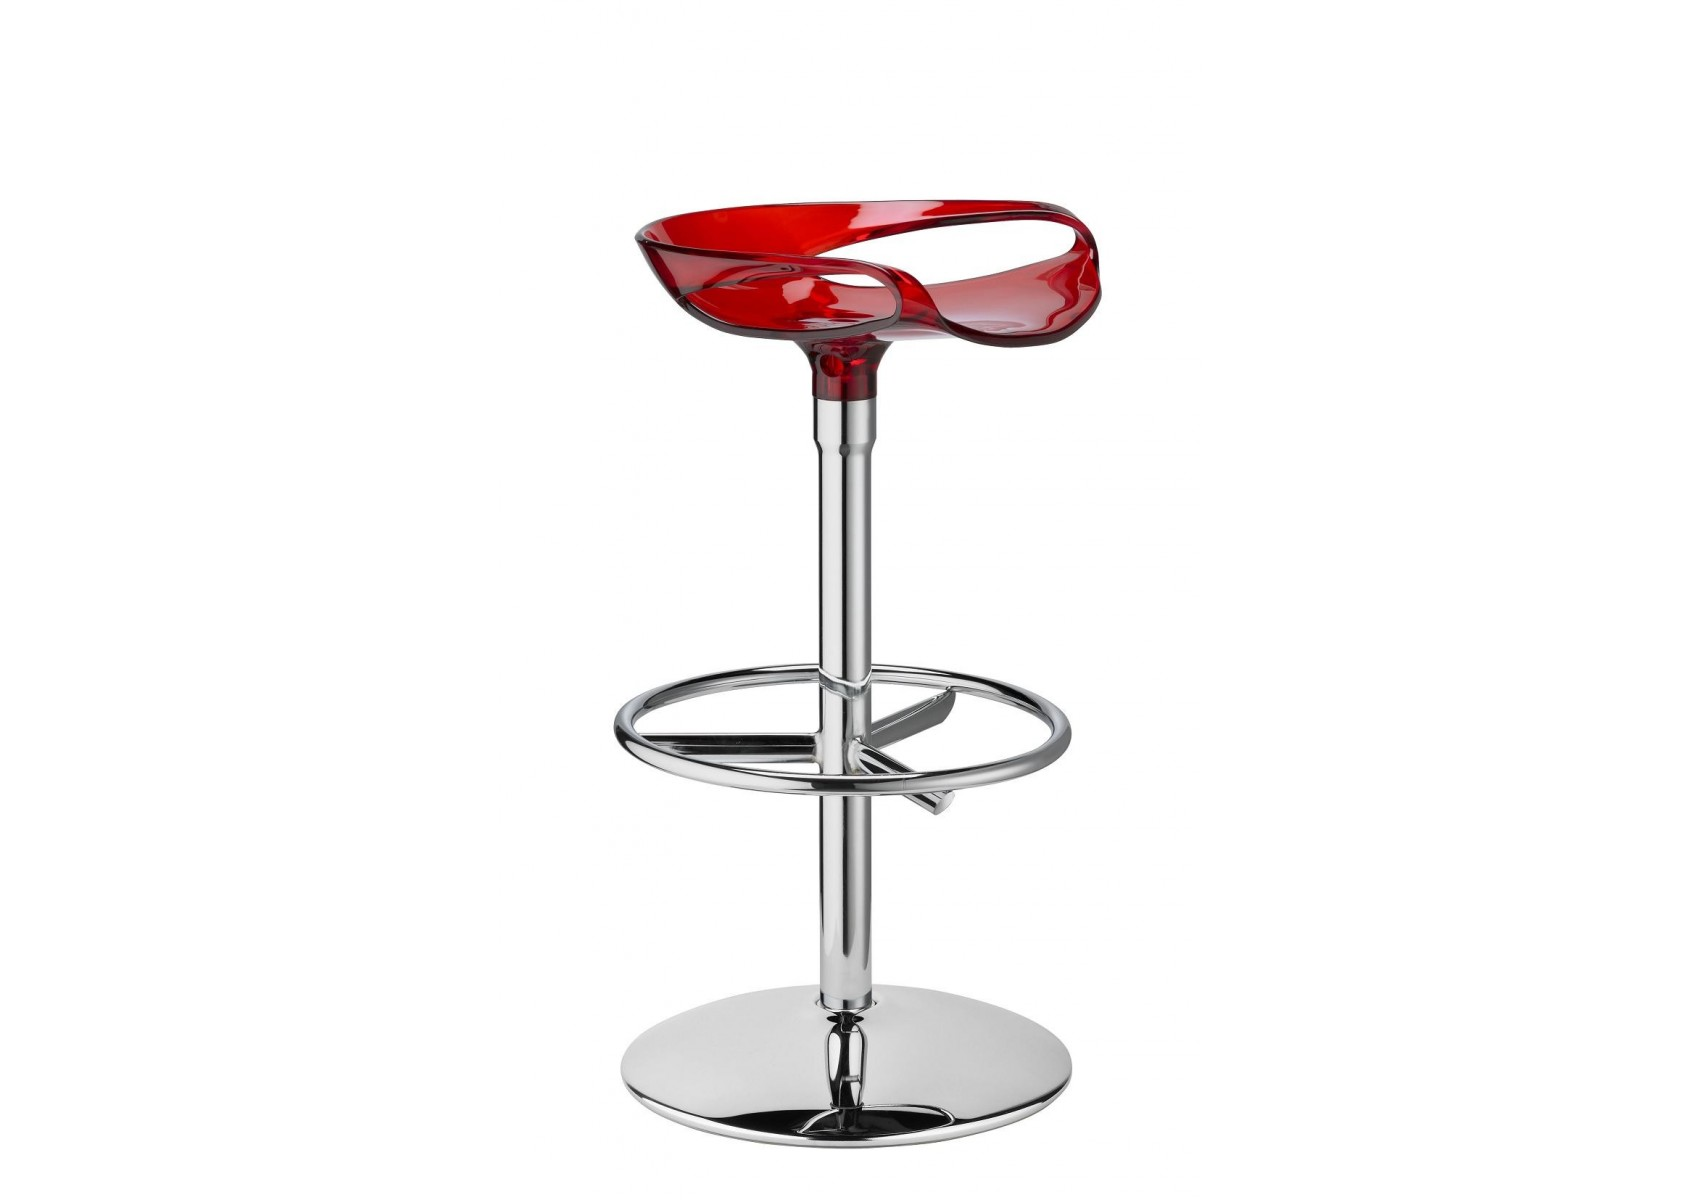 Tabouret de bar design zoe twist deco originale boite design - Deco bar design ...